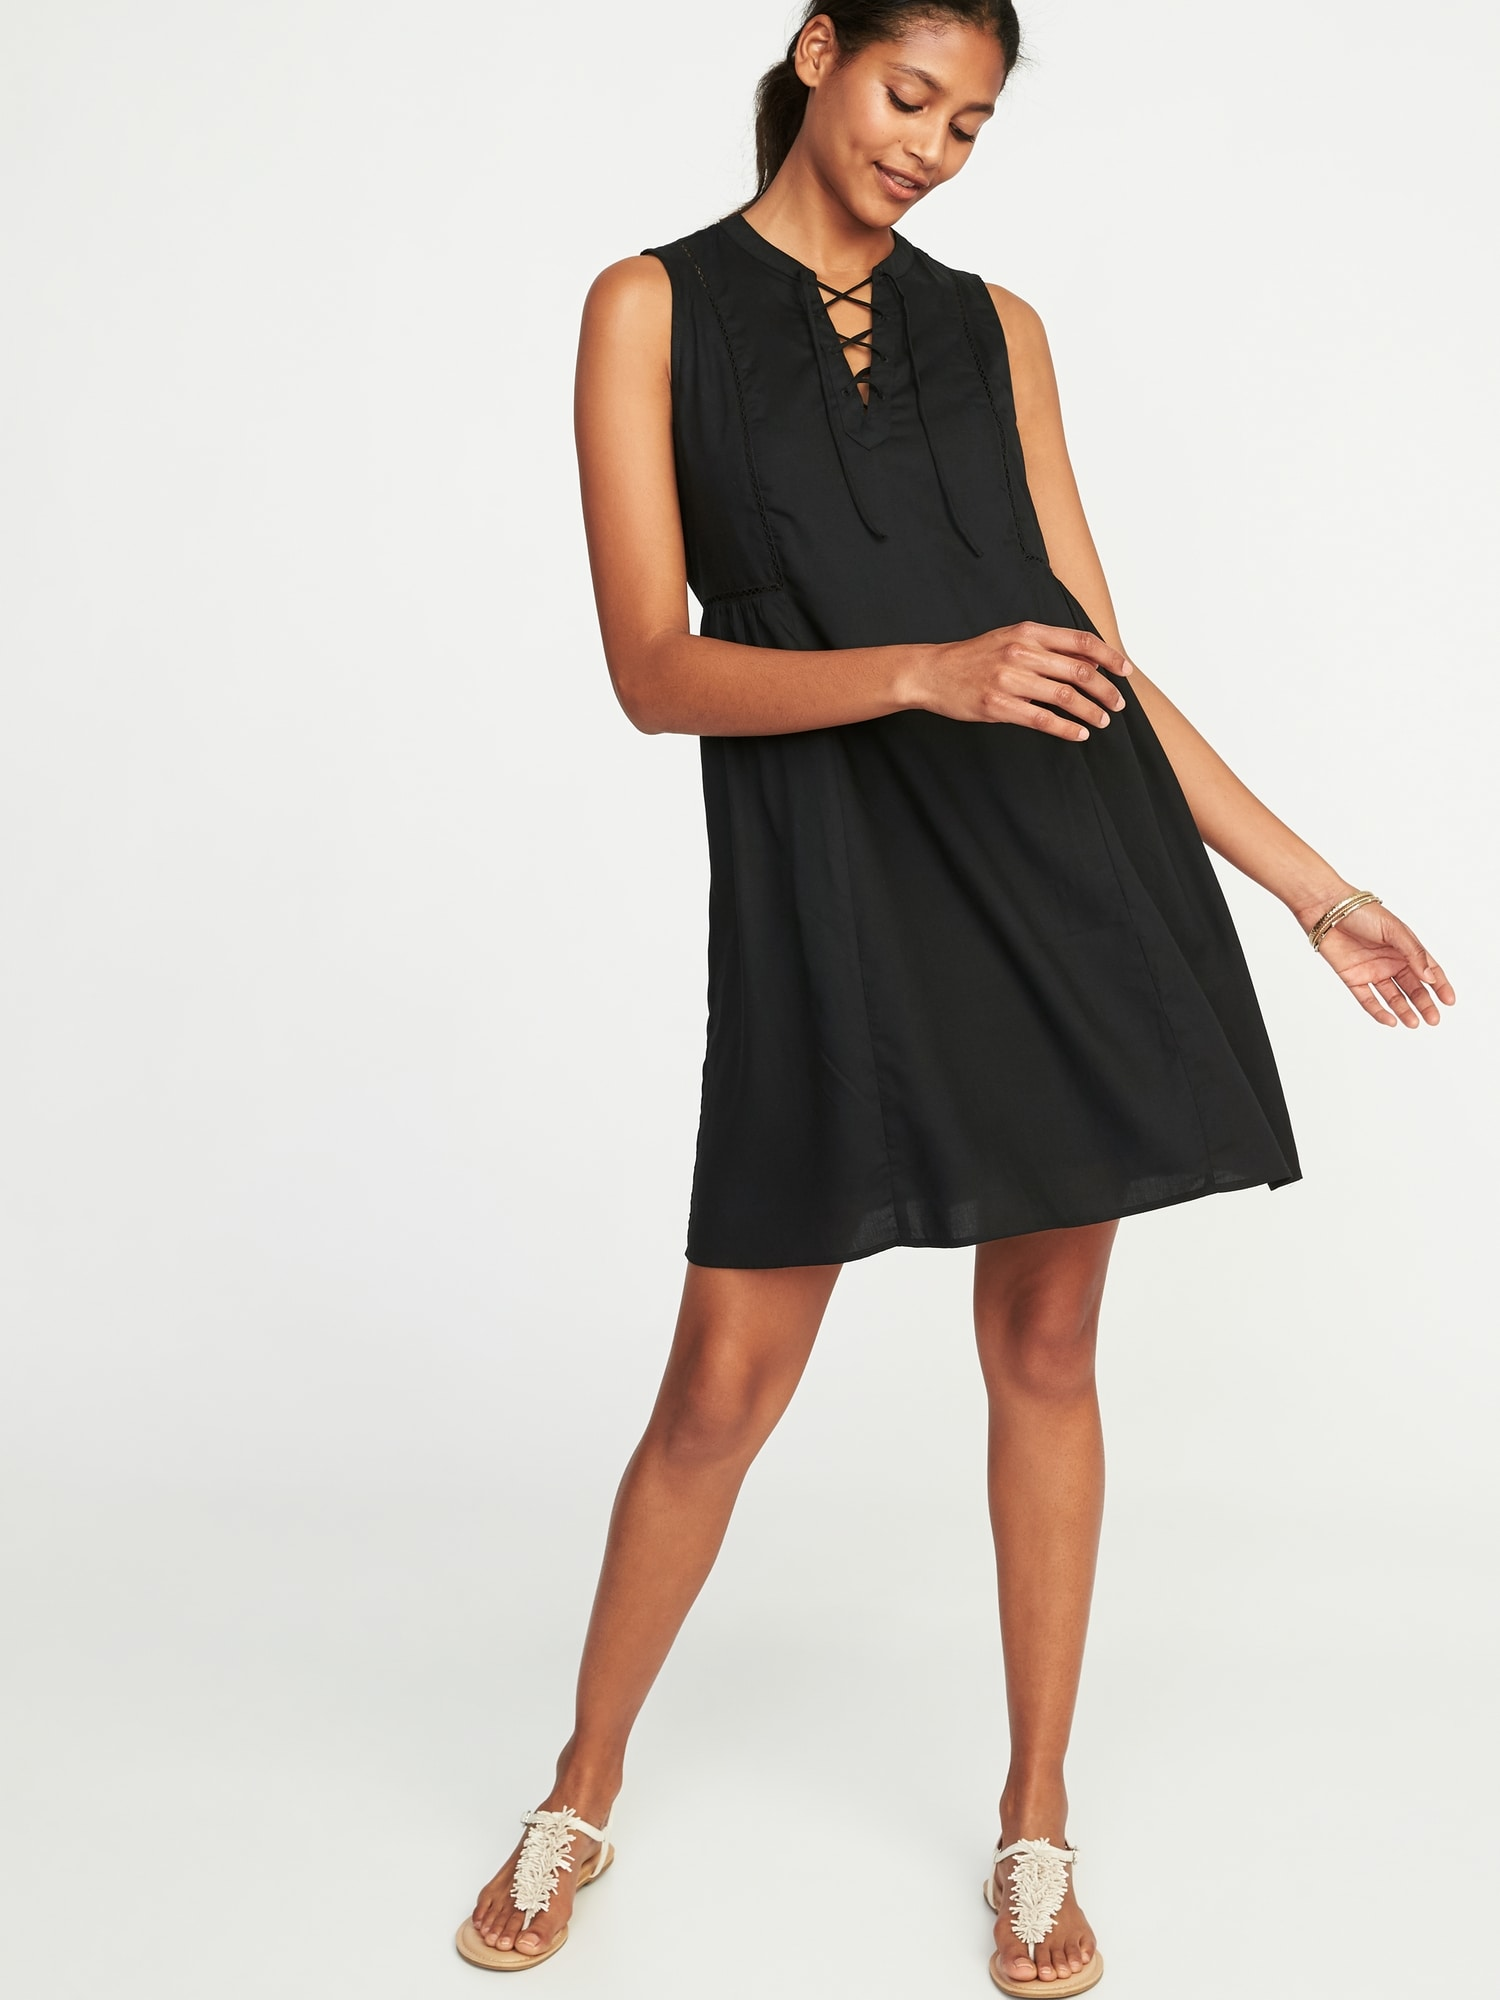 973754d105d3 Lace-Up Sleeveless Swing Dress for Women | Old Navy